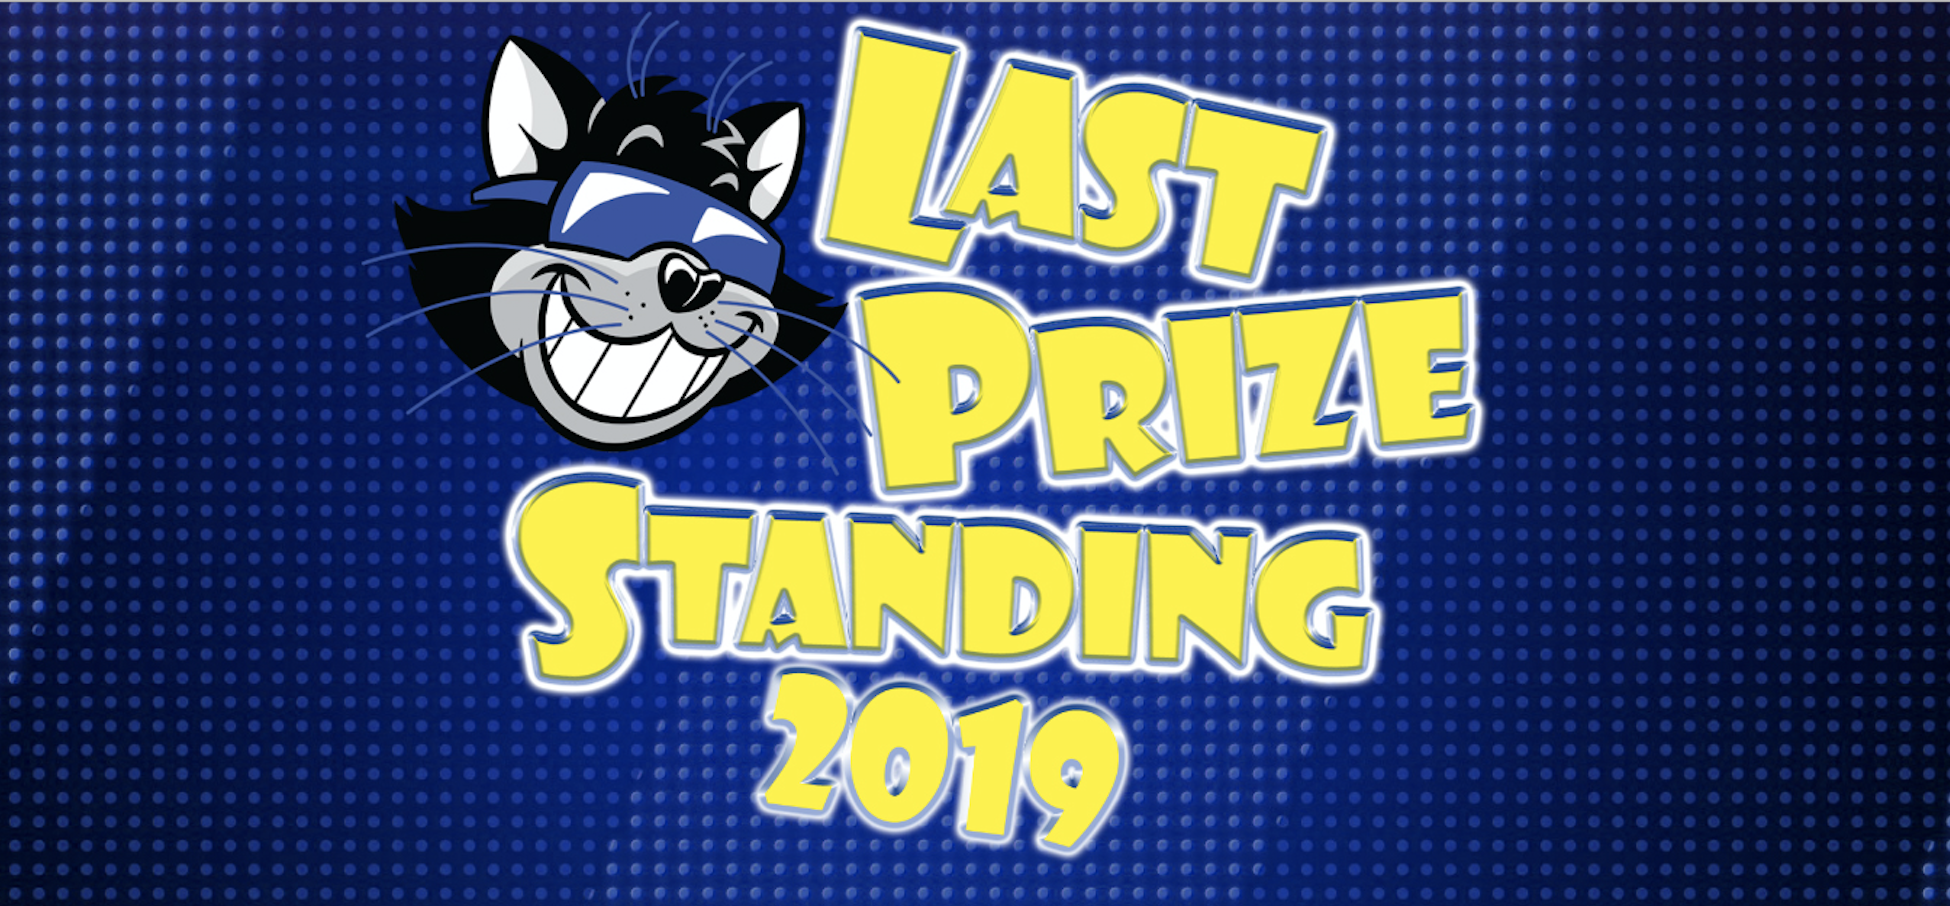 Last Prize Standing 2018 – Winner Announced - Cat Country 98 7